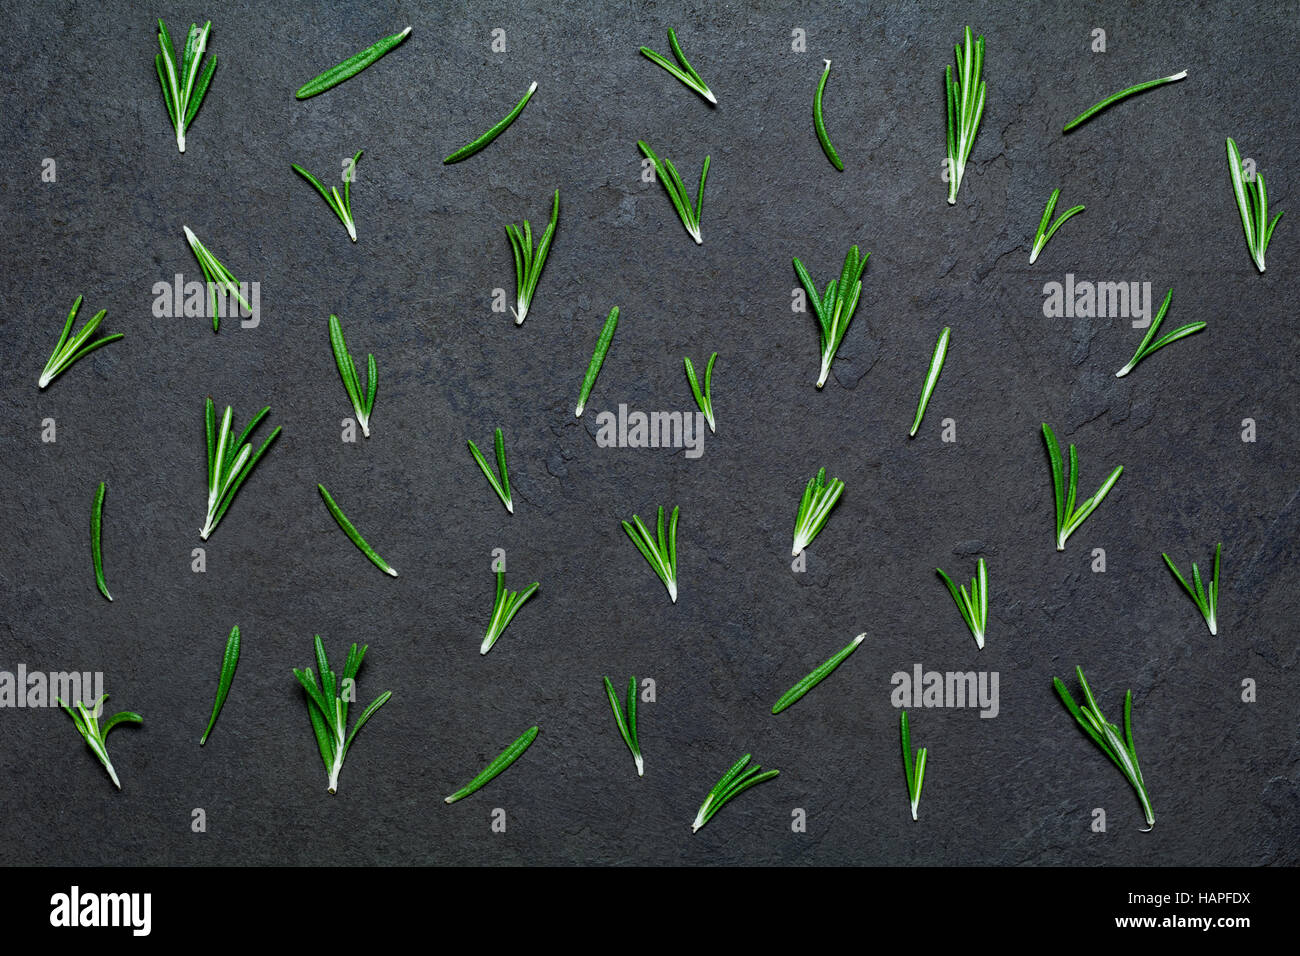 Fresh rosemary composition. Pattern made of rosemary springs on black stone background. Horizontal image - Stock Image